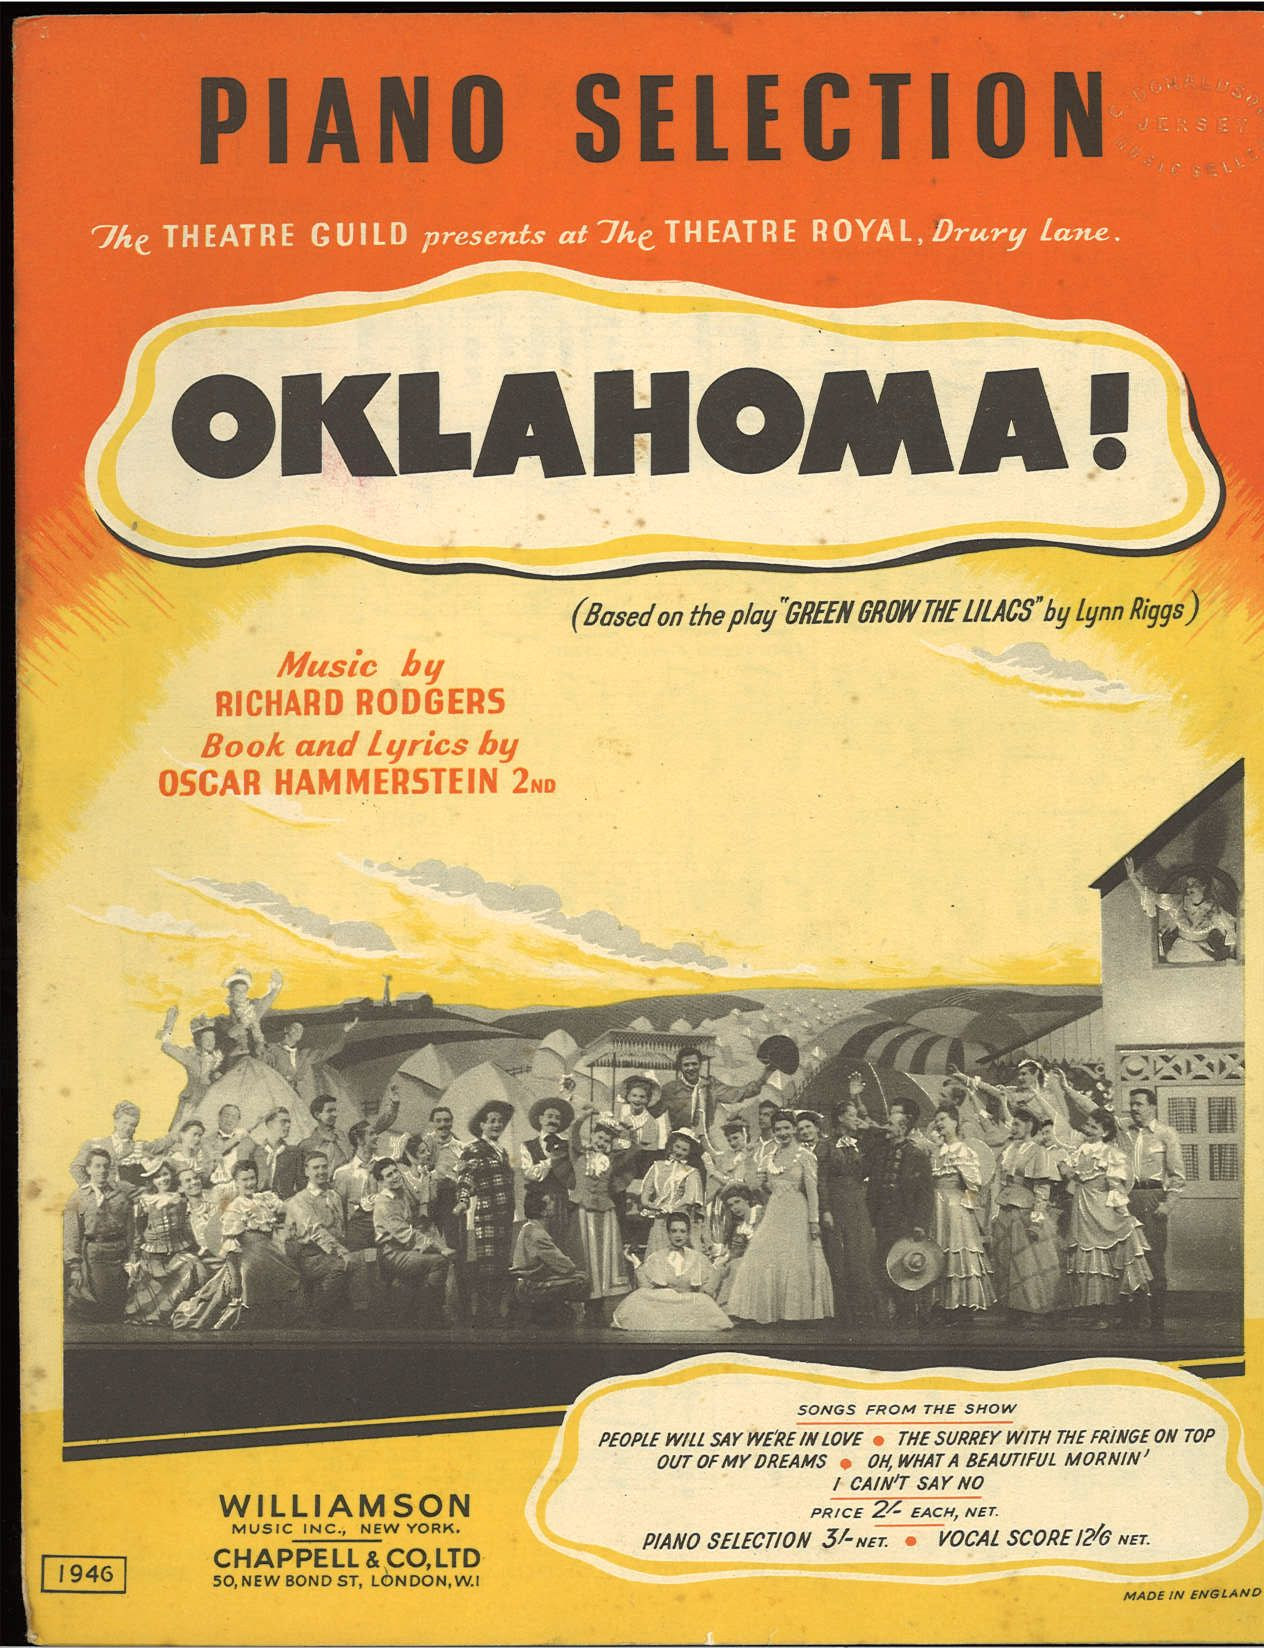 OKLAHOMA - RICHARD RODGERS - SPARTITO-SHEET MUSIC